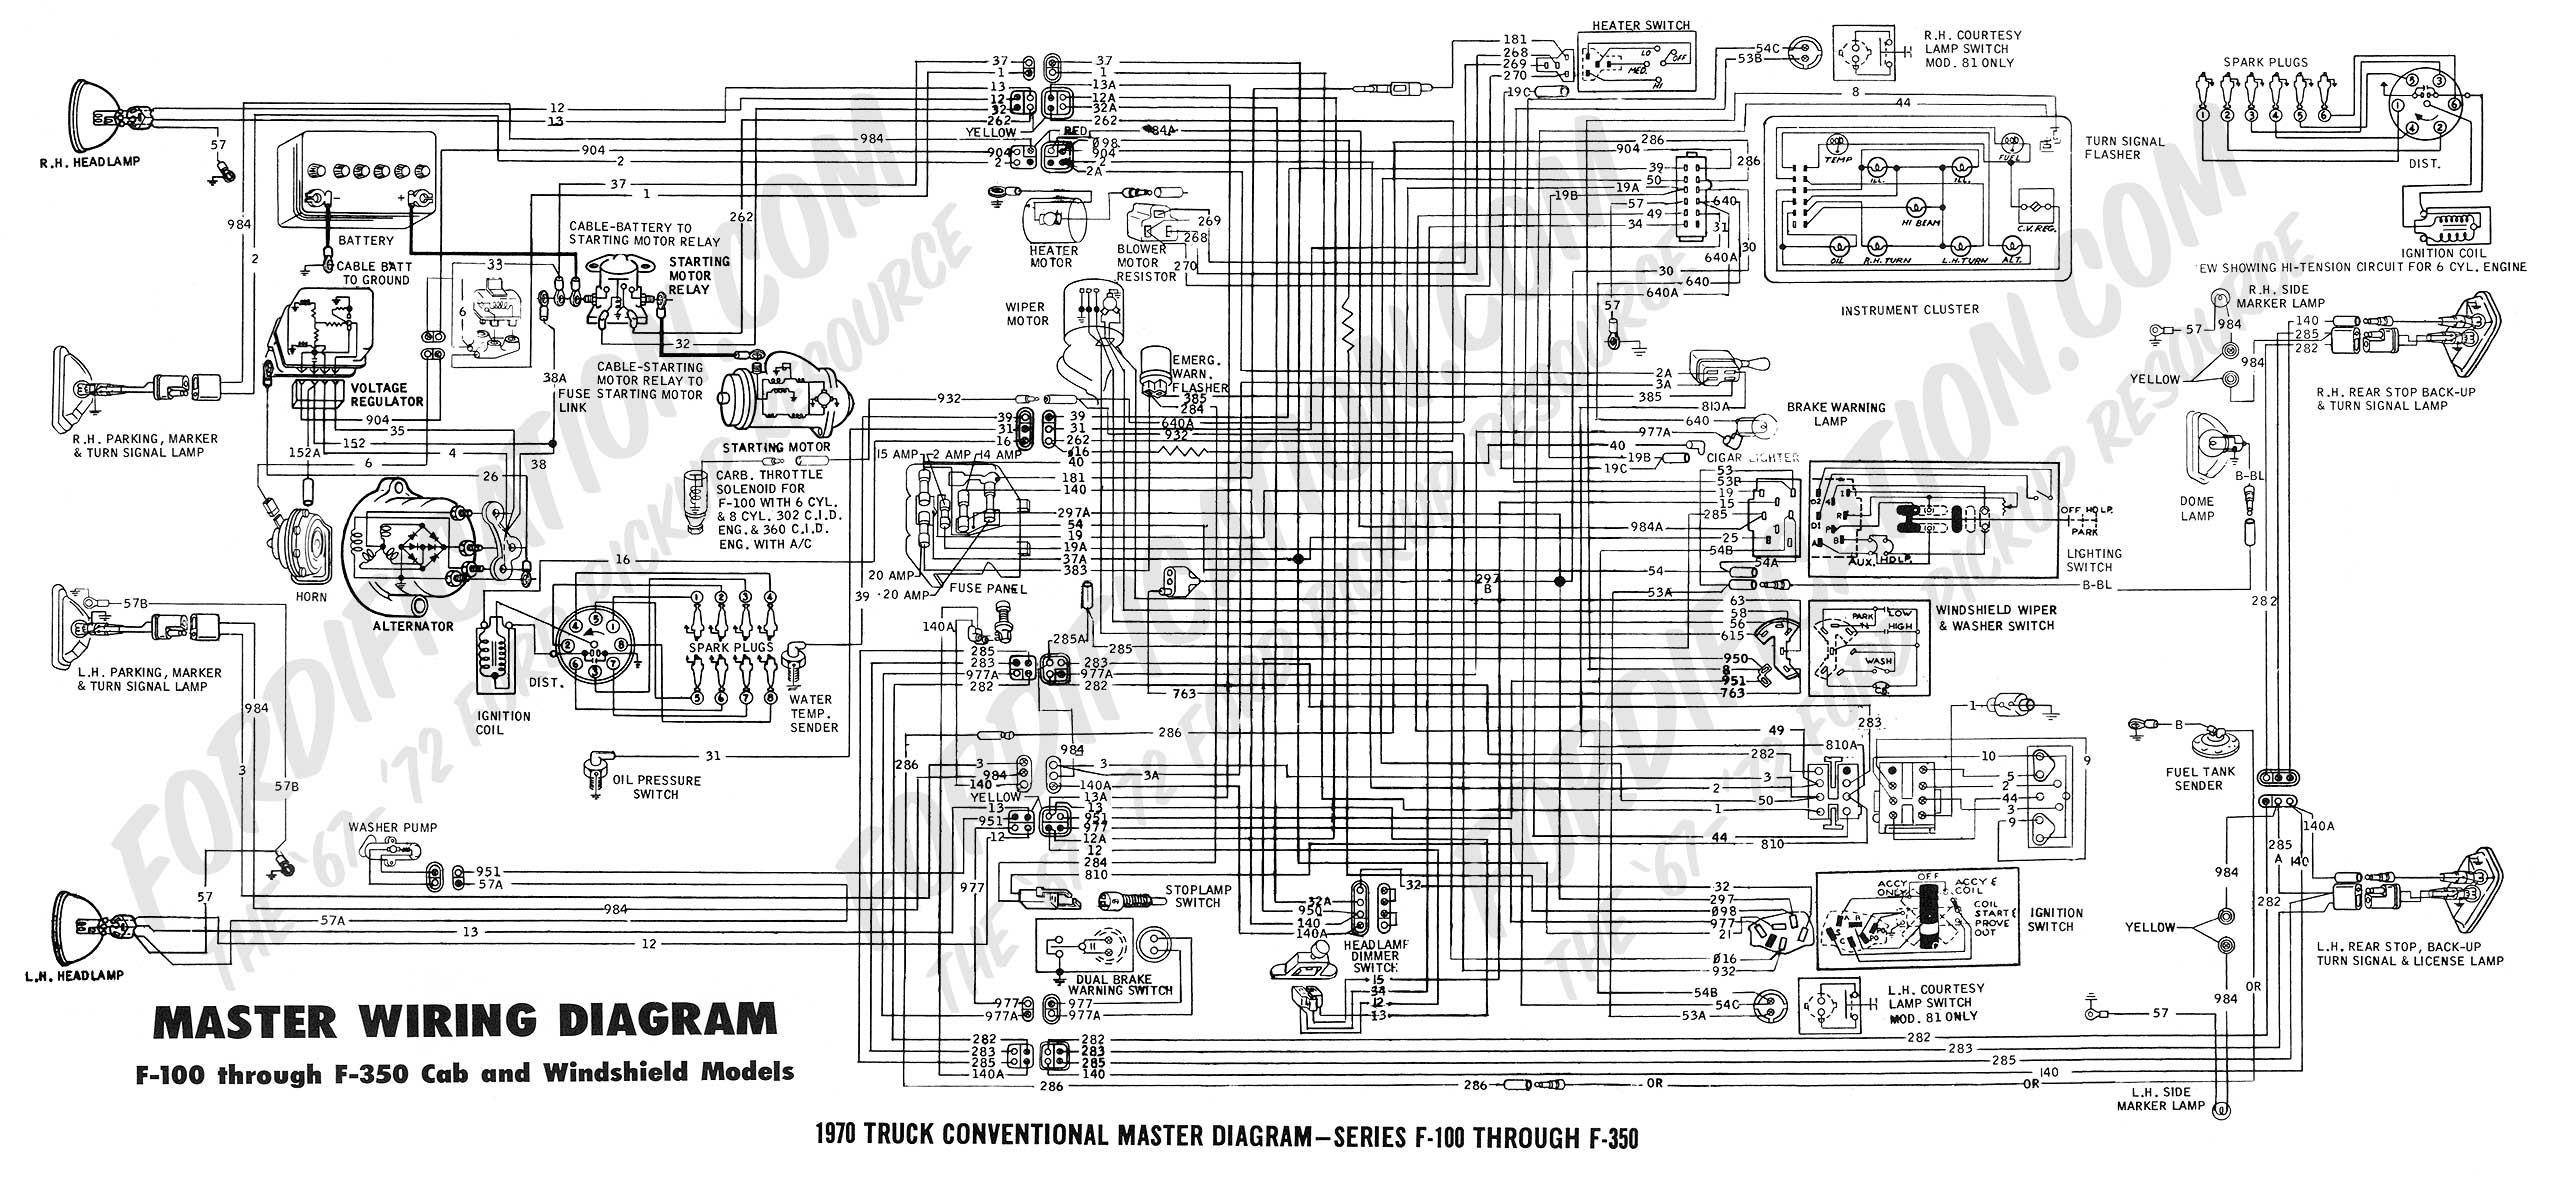 1971 F250 Wiring Diagram - Free Vehicle Wiring Diagrams •